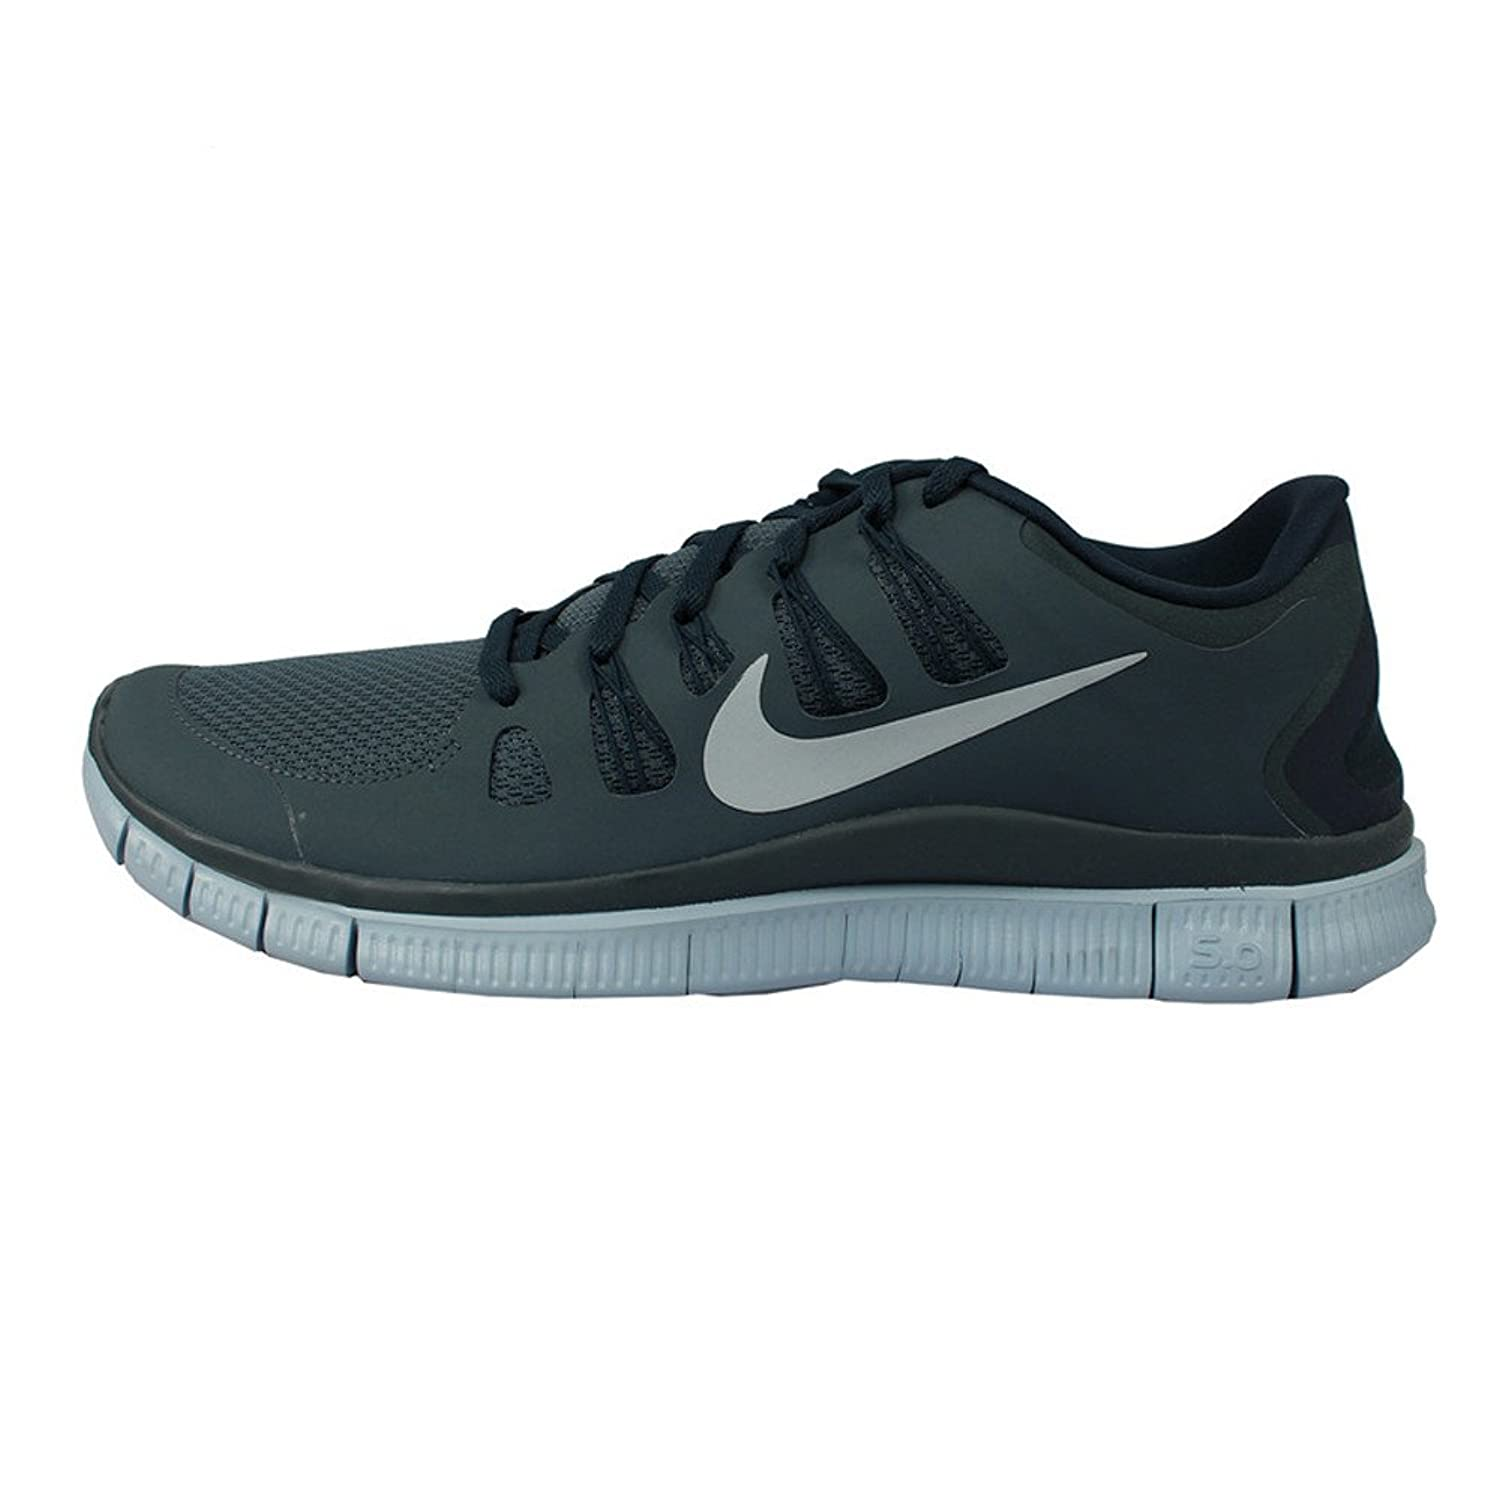 f2cdeccaf8284 ... coupon for amazon nike free 5.0 mens running shoes 8.5 dark blue 579959  445 basketball 2da73